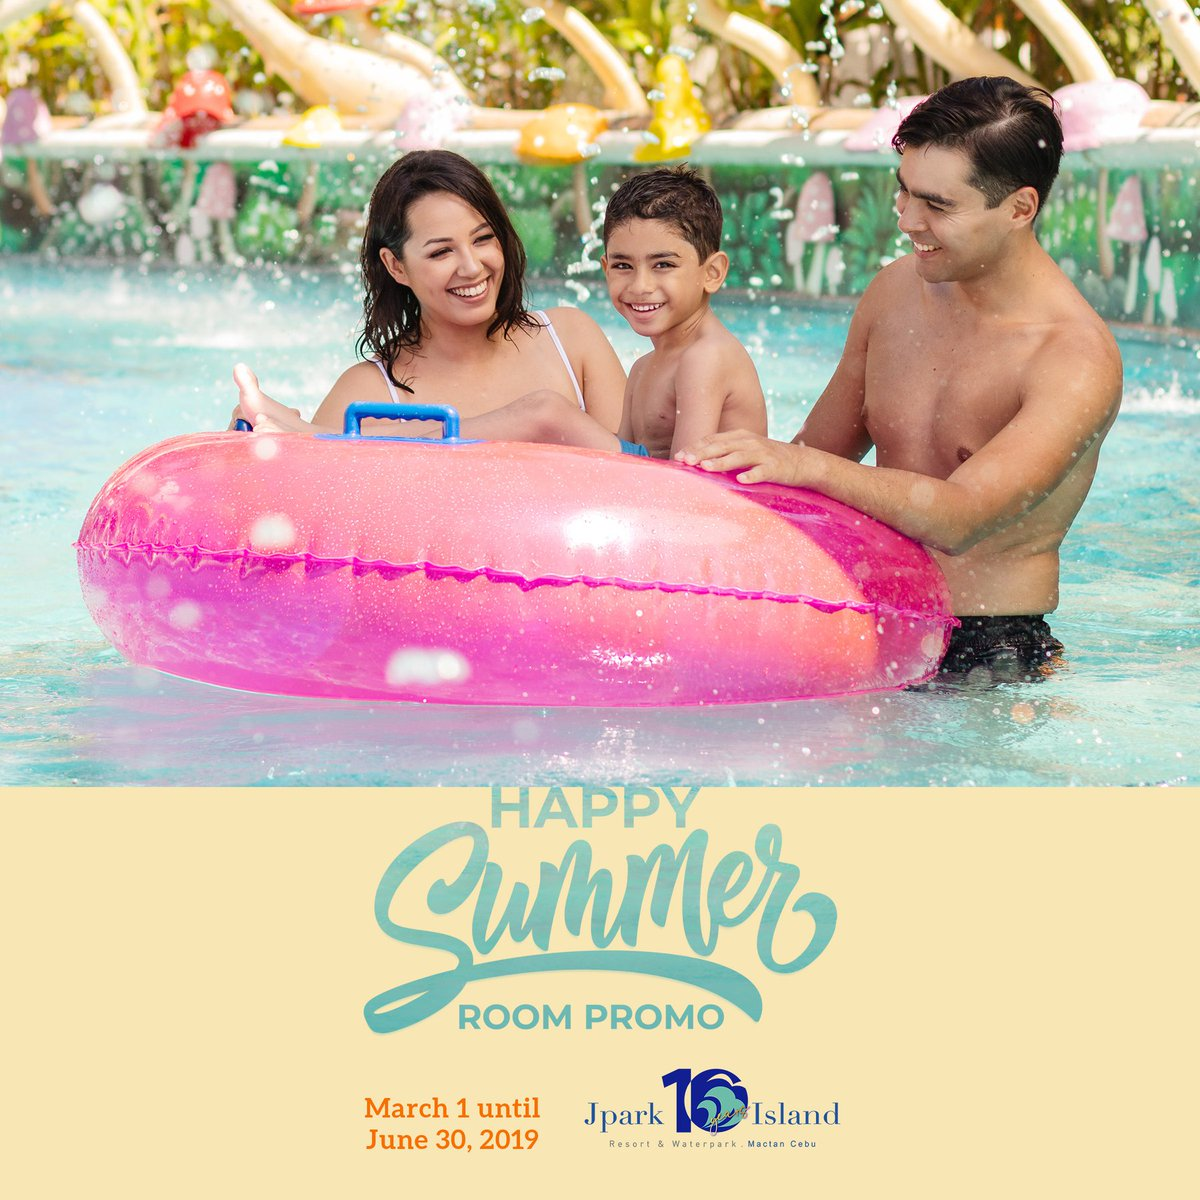 Our breakfast buffet, hotel gym, water park facilities, and more will surely make your summer the happiest one yet! Book now! Promo code SUMMER to avail of our discounted rates!  Click here to know more: https://t.co/atg2VLnEHd #MyJparkStory #WaterYouWaitingFor  #TenYearsOfJpark https://t.co/BSkiPALMZg